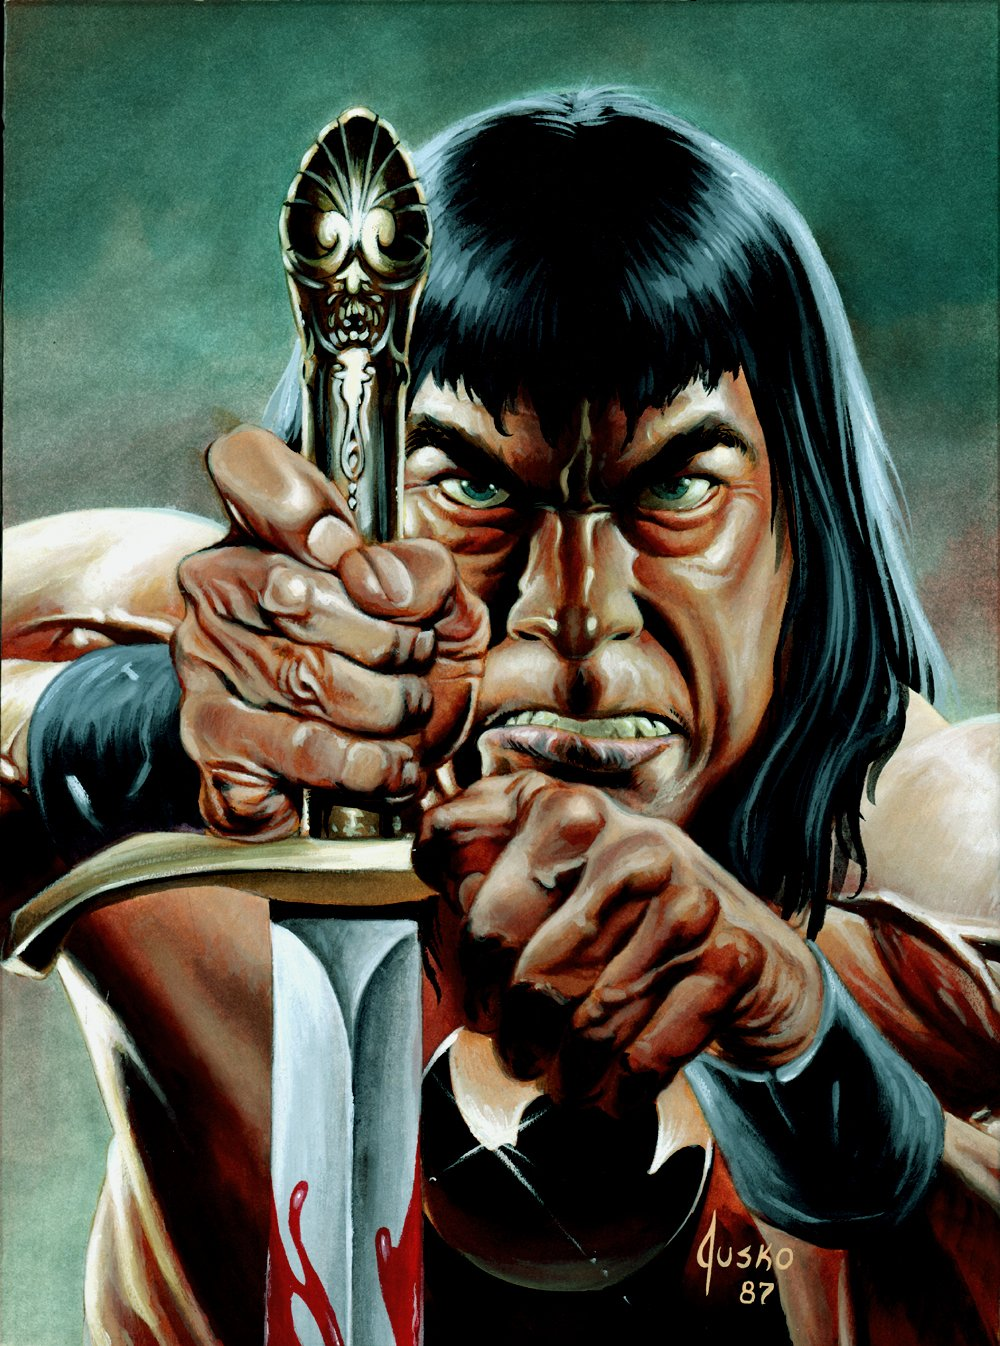 Savage Sword of Conan #139 Cover Painting (1987)